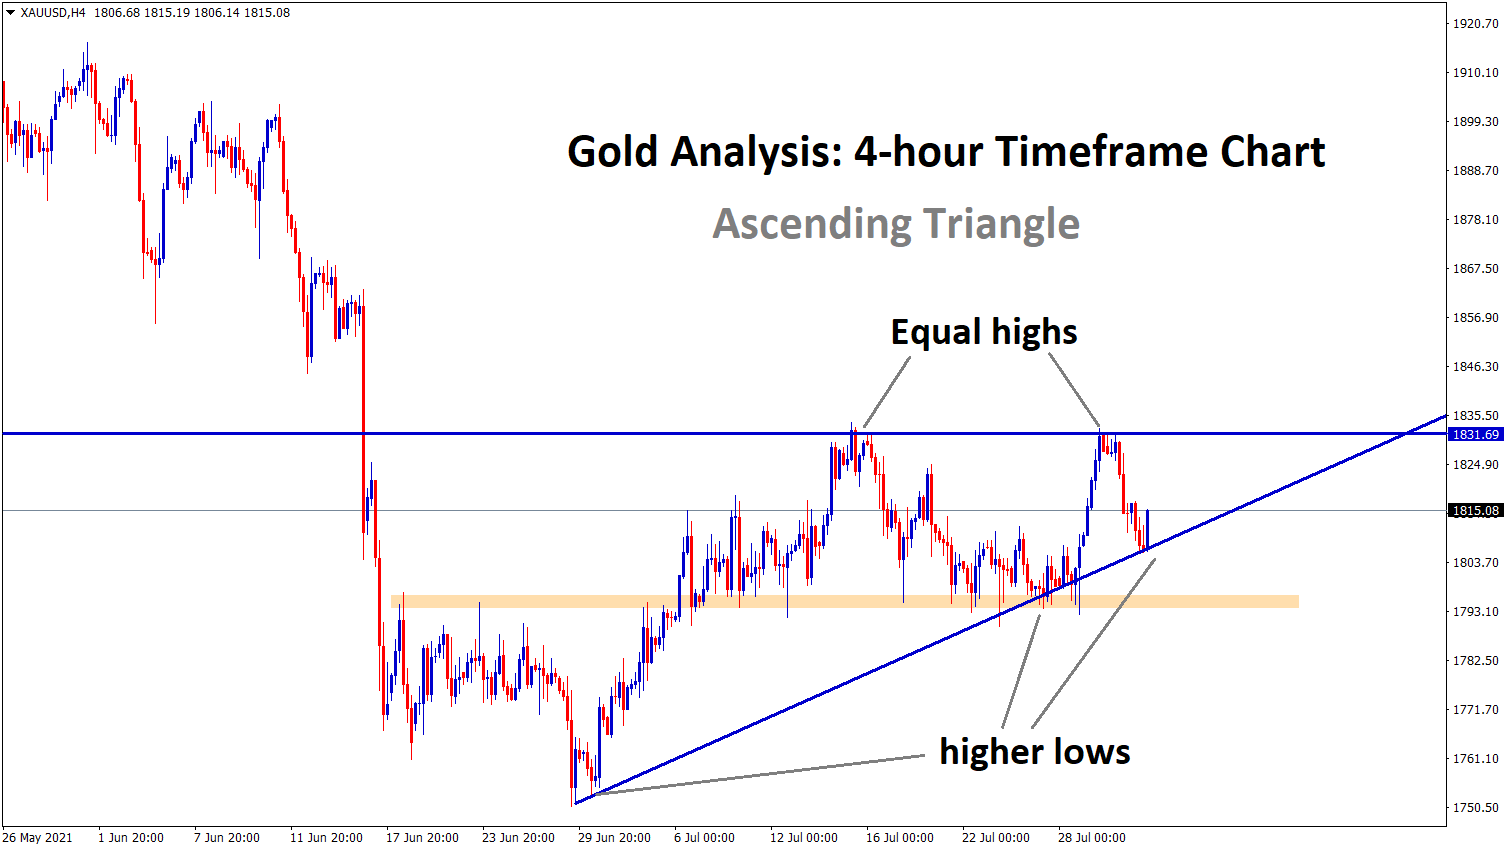 Gold bounces back exactly from the higher low of an Ascending Triangle pattern